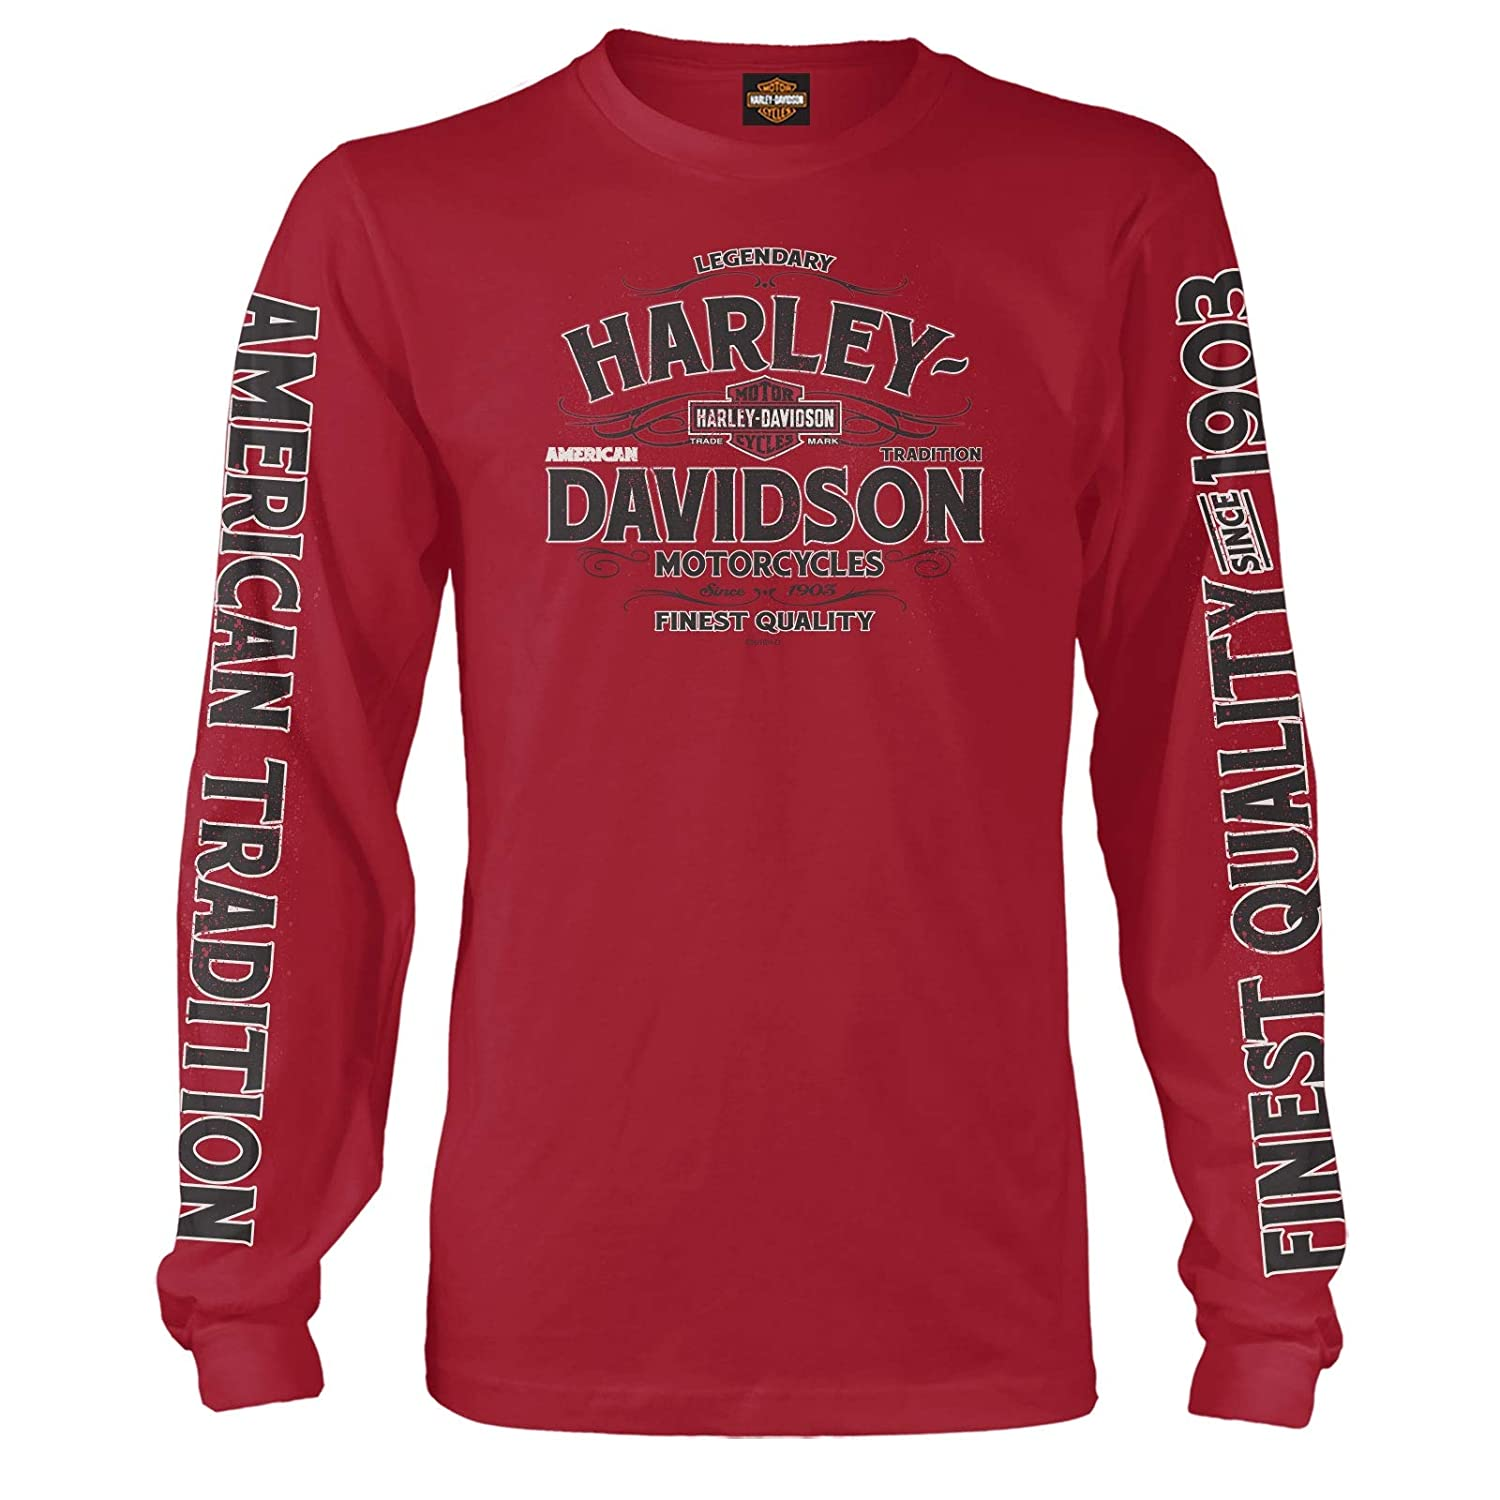 Harley-Davidson Military Vintage Tradition Mens Long-Sleeve Graphic T-Shirt Kadena Air Base